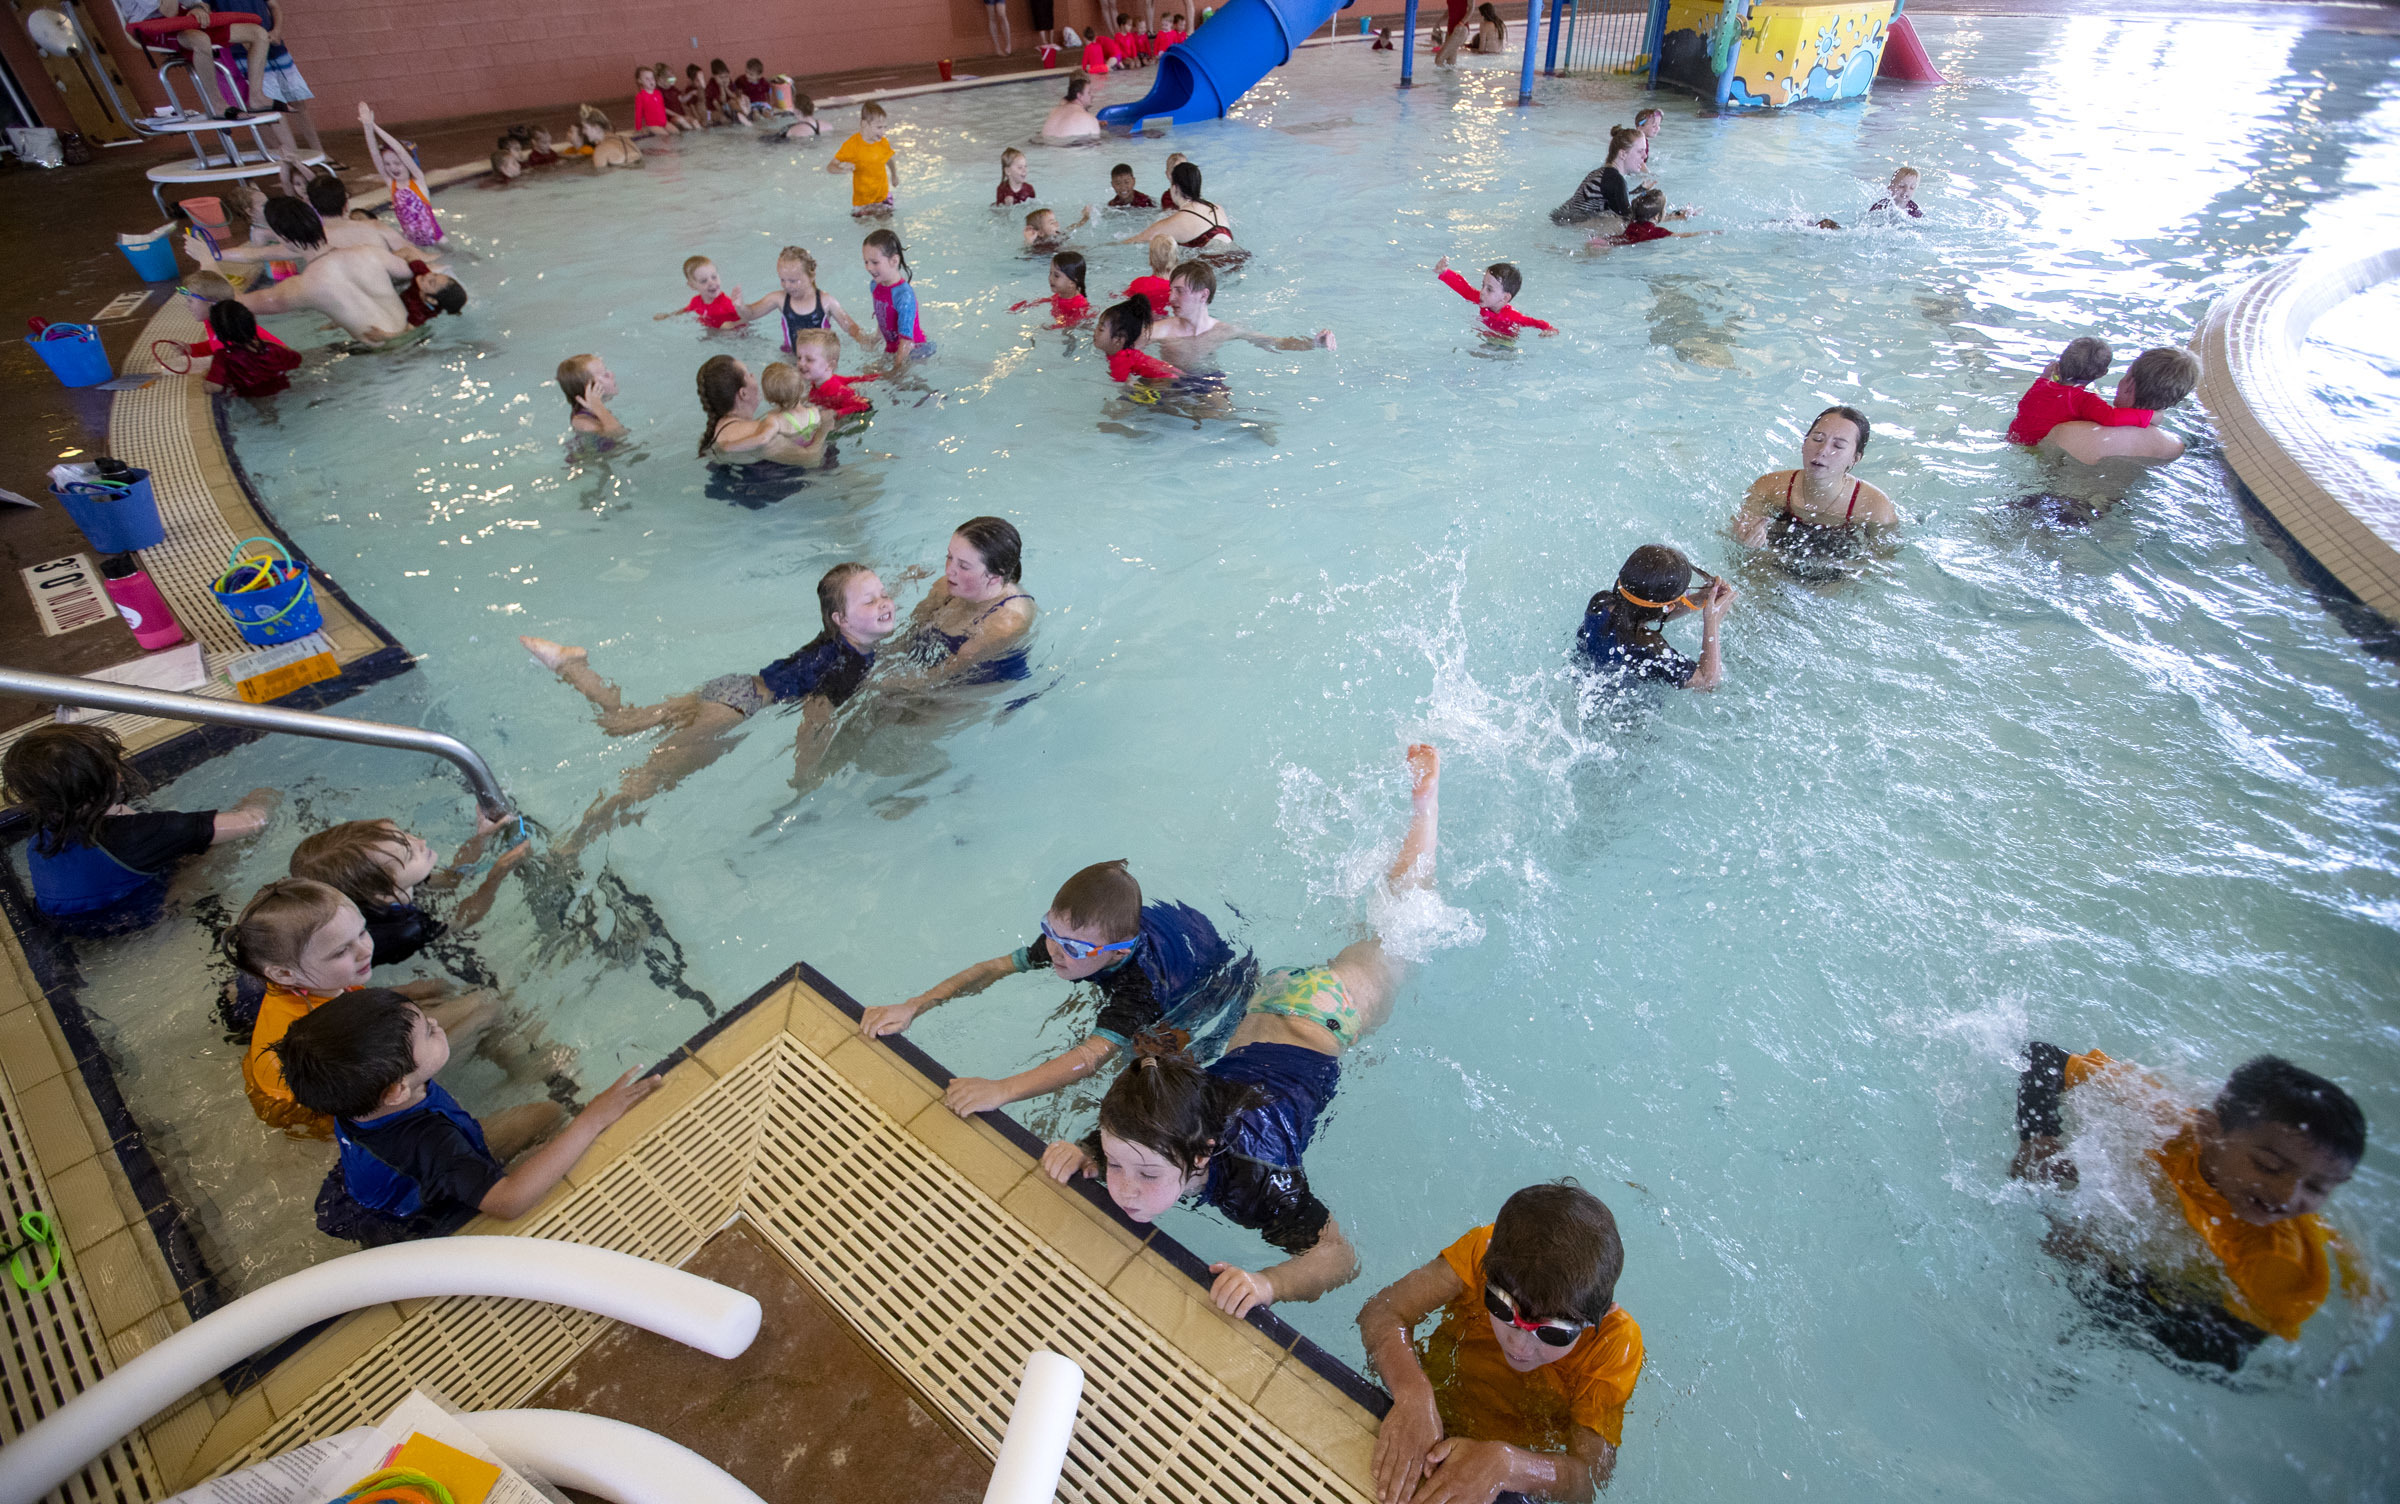 Photos: World's Largest Swimming Lesson aims to create a